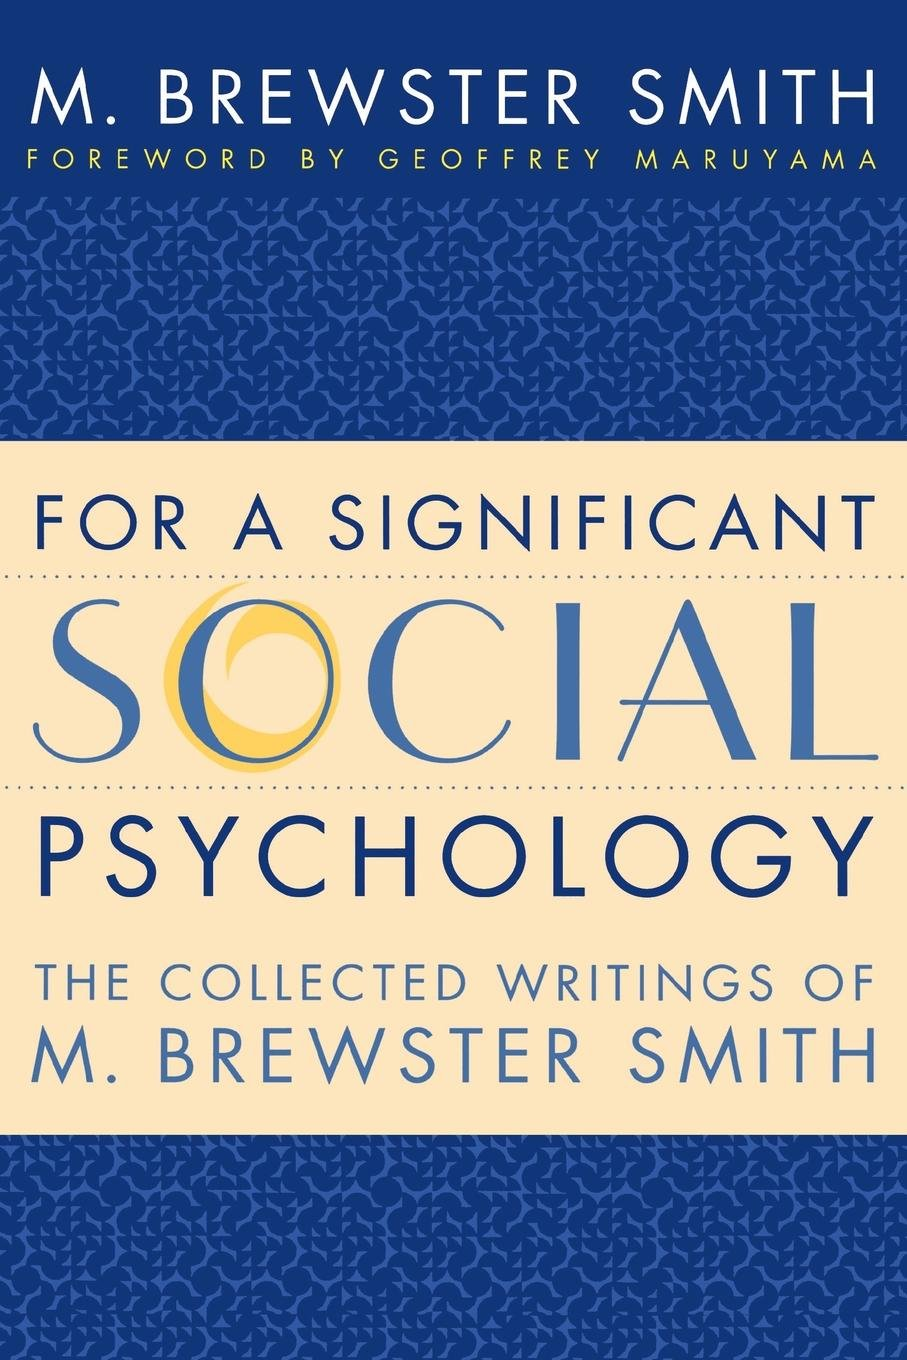 Download For a Significant Social Psychology: The Collected Writings of M. Brewster Smith PDF